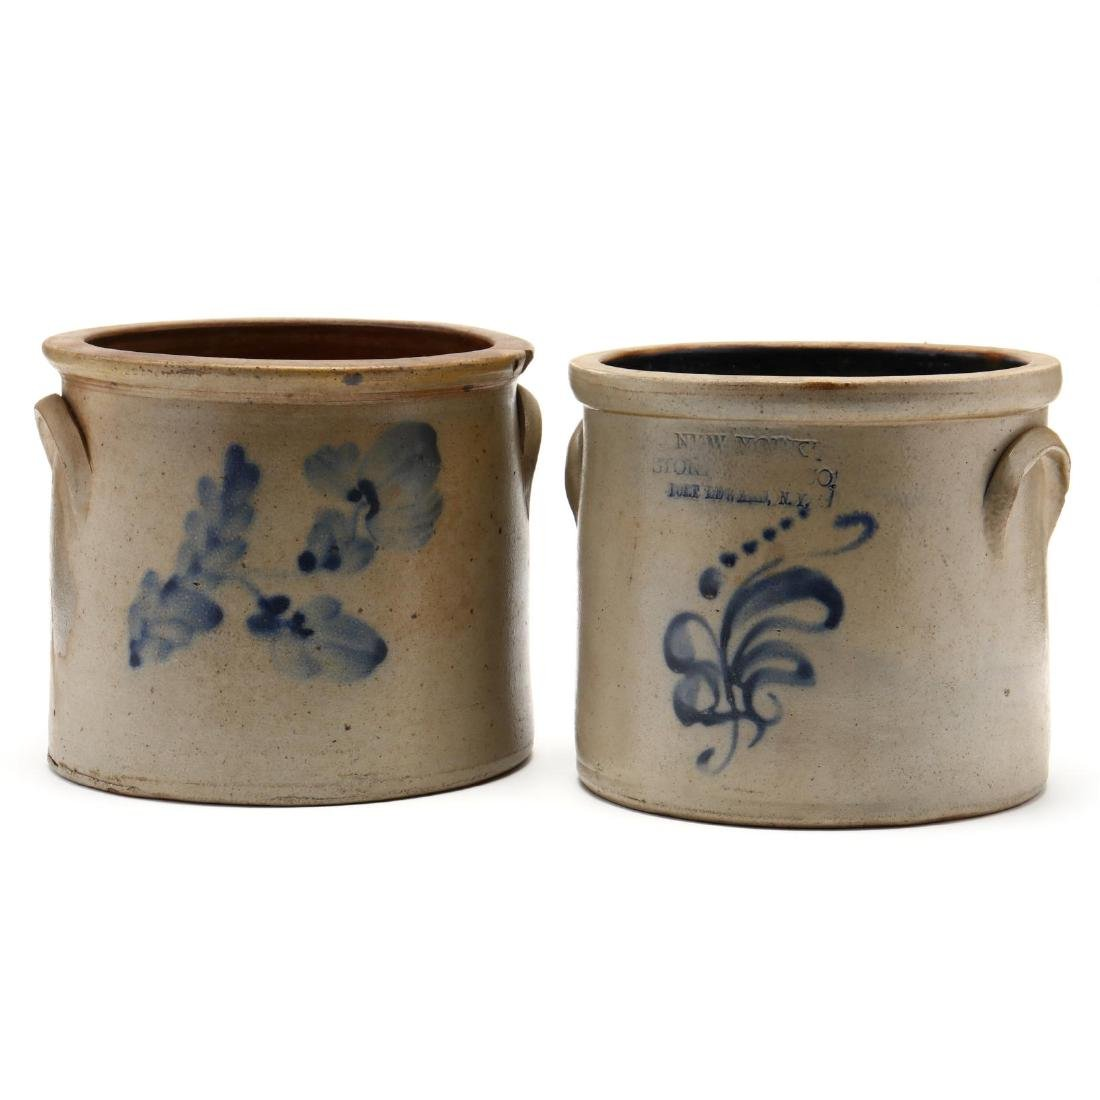 Antique Stoneware Crocks, One from New York